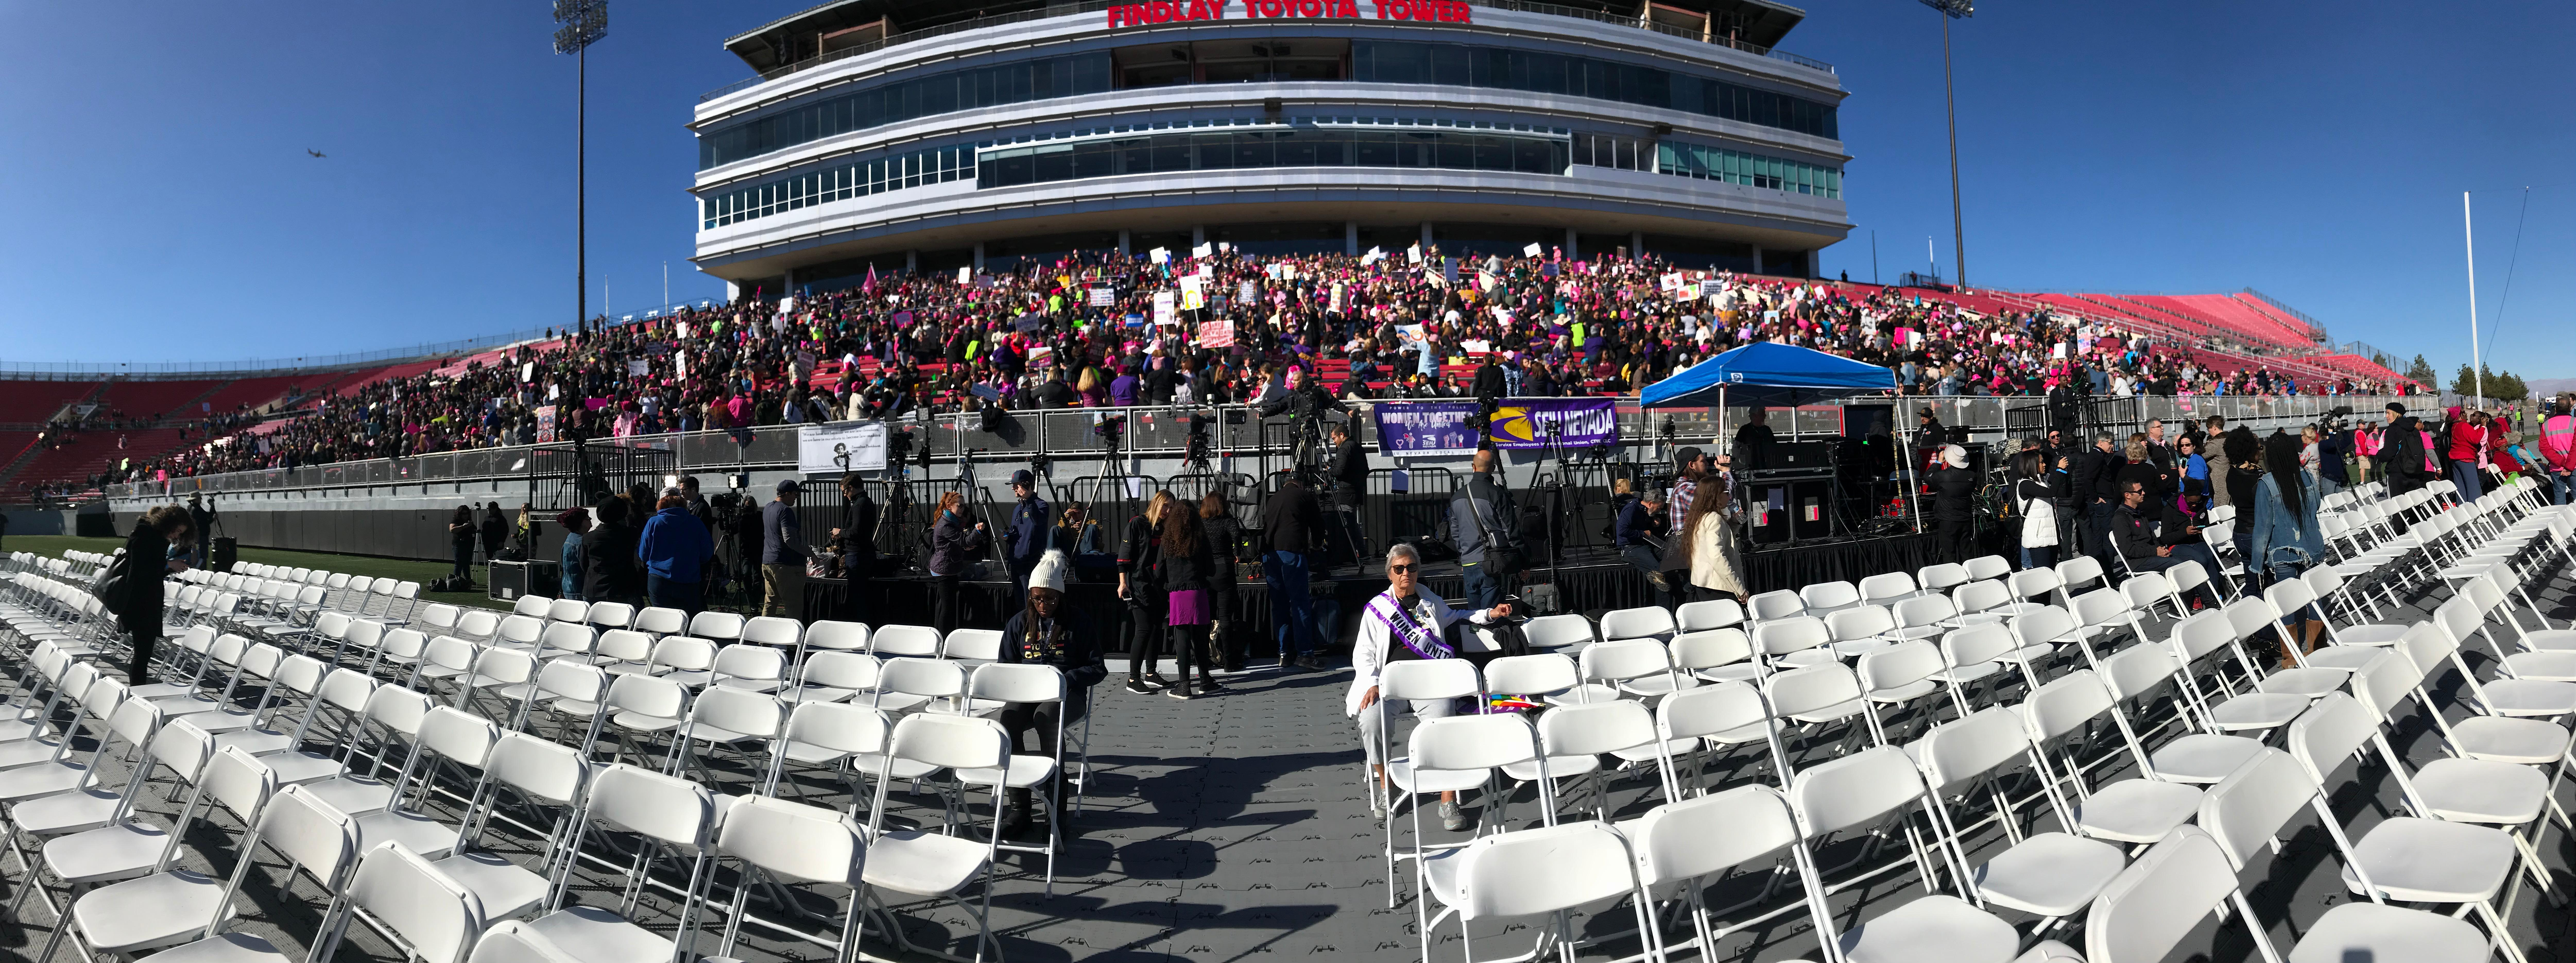 Voting and political involvement were stressed to attendees at the Women's Voter March Rally at Sam Boyd Stadium in Las Vegas on Sunday, Jan. 21, 2018. (Kyndell Nunley | KSNV)<p></p>